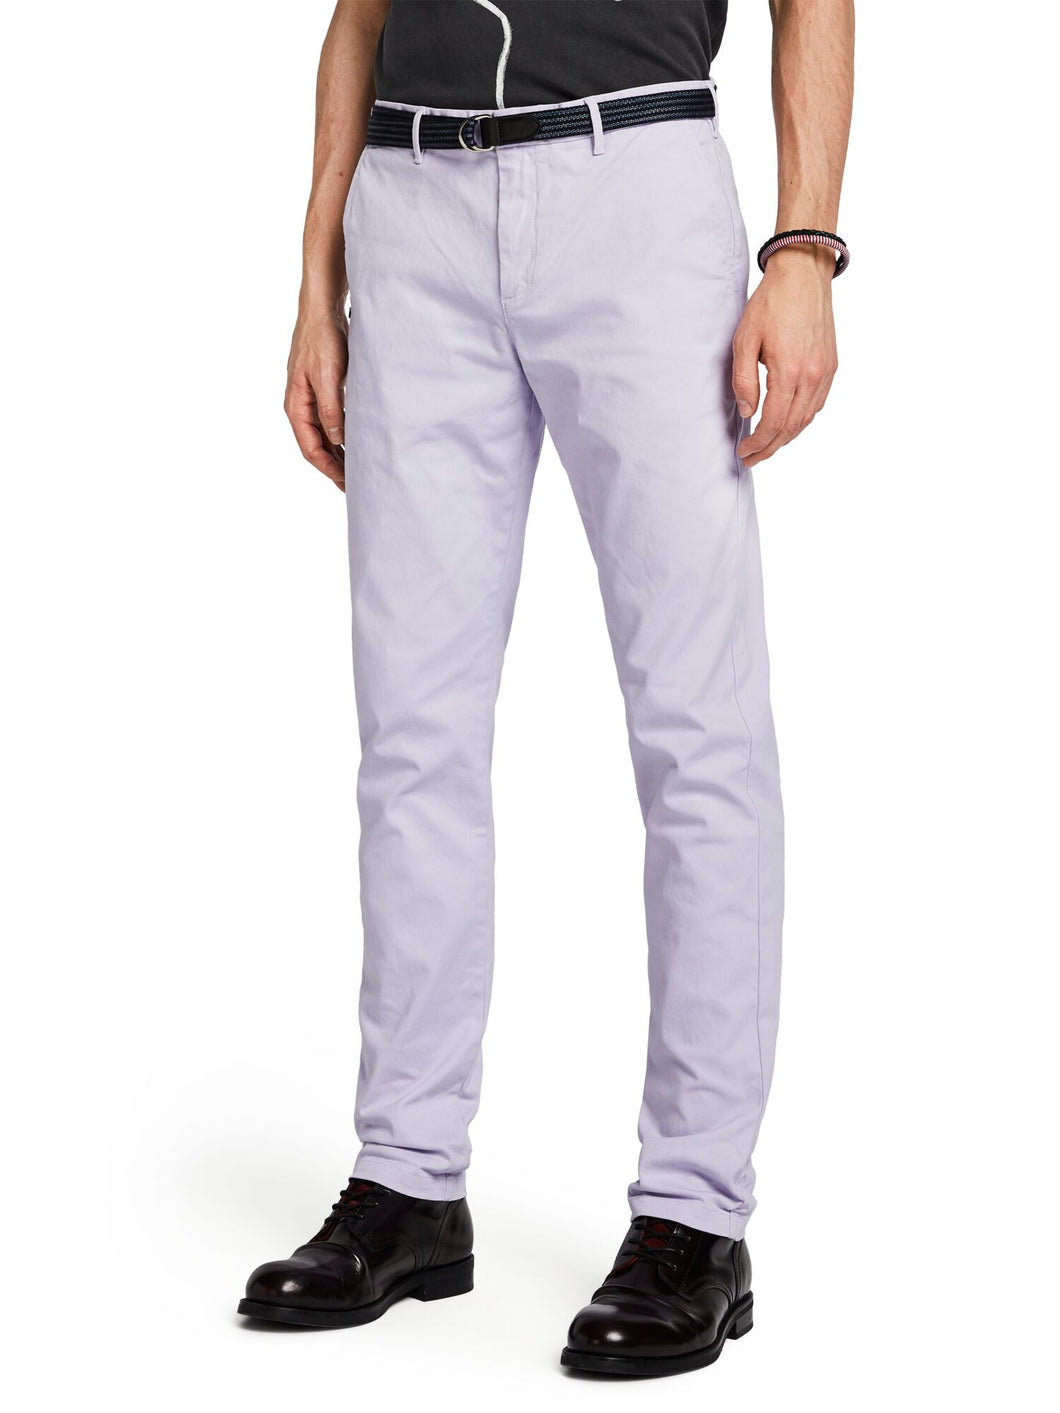 SCOTCH & SODA - Blauw stuart chino - Lilac